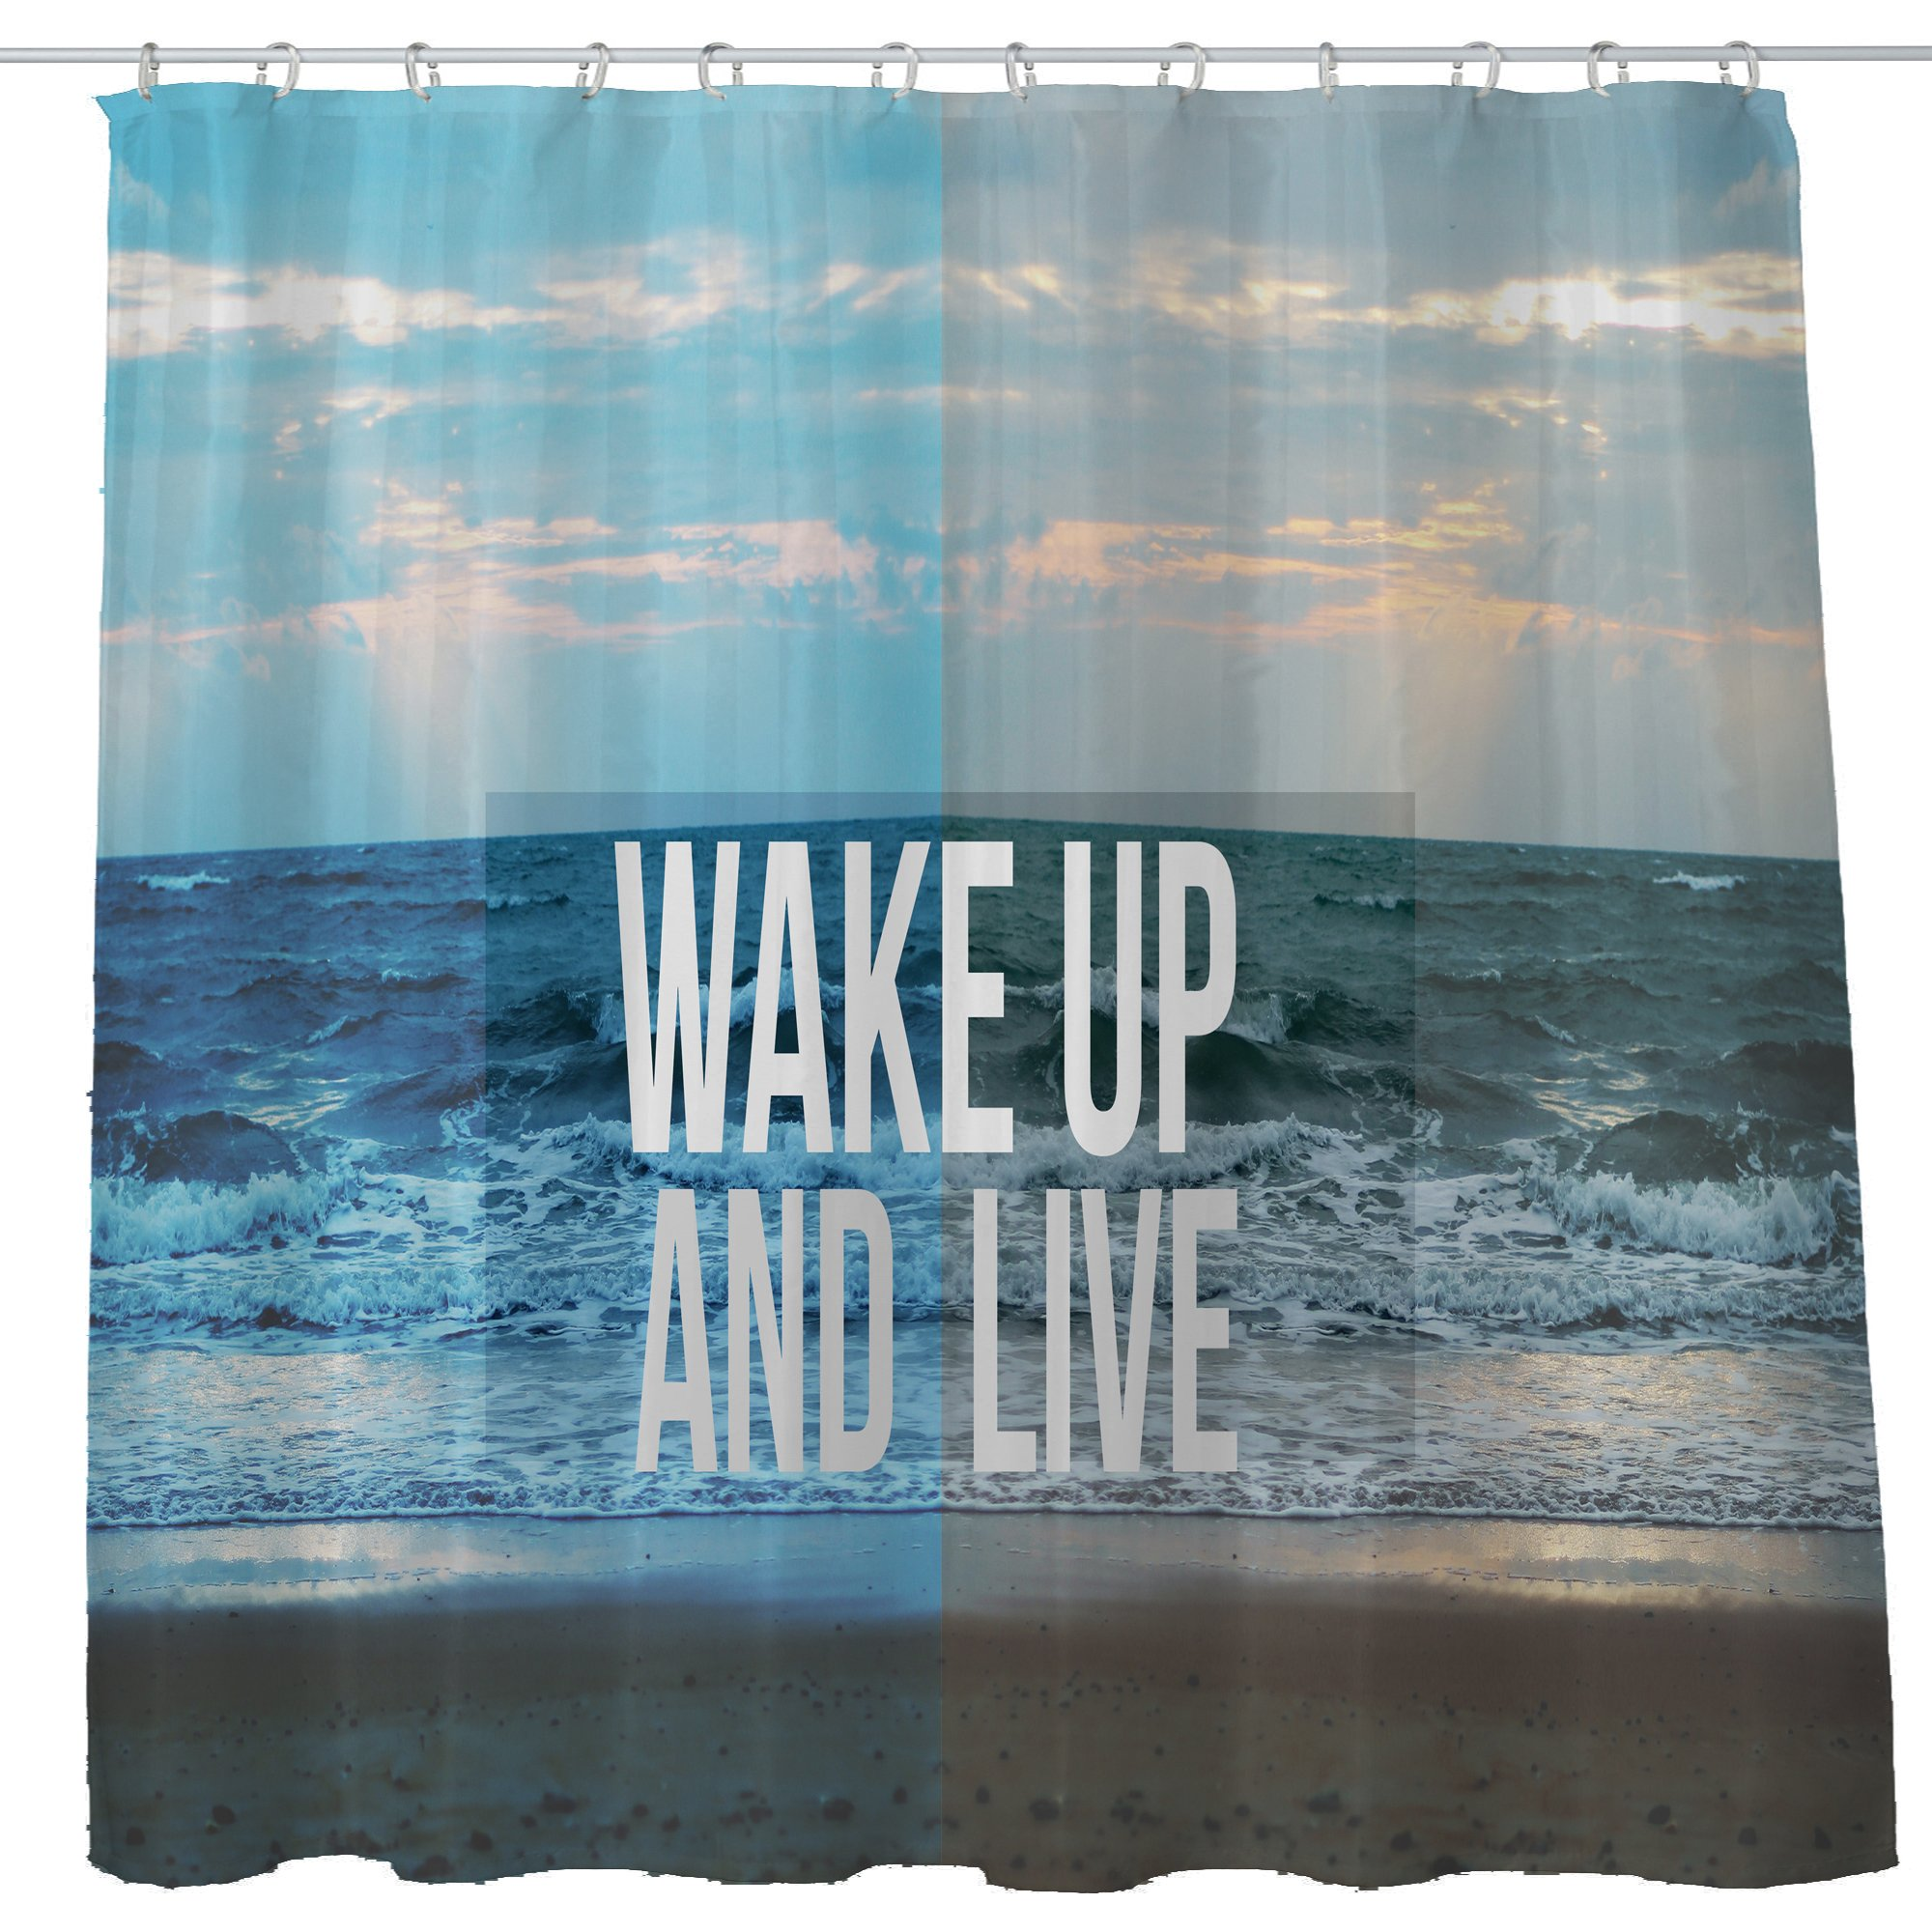 Shower Curtain Cloth Fabric Waterproof Non-Toxic Polyester Decor Washing Room 12 Self Grommets Plastic Rings Landscape Motivational Self Positive Girl Quotes Wake Up And Live 72x72 (180x180cm) (10) by DJSBZ